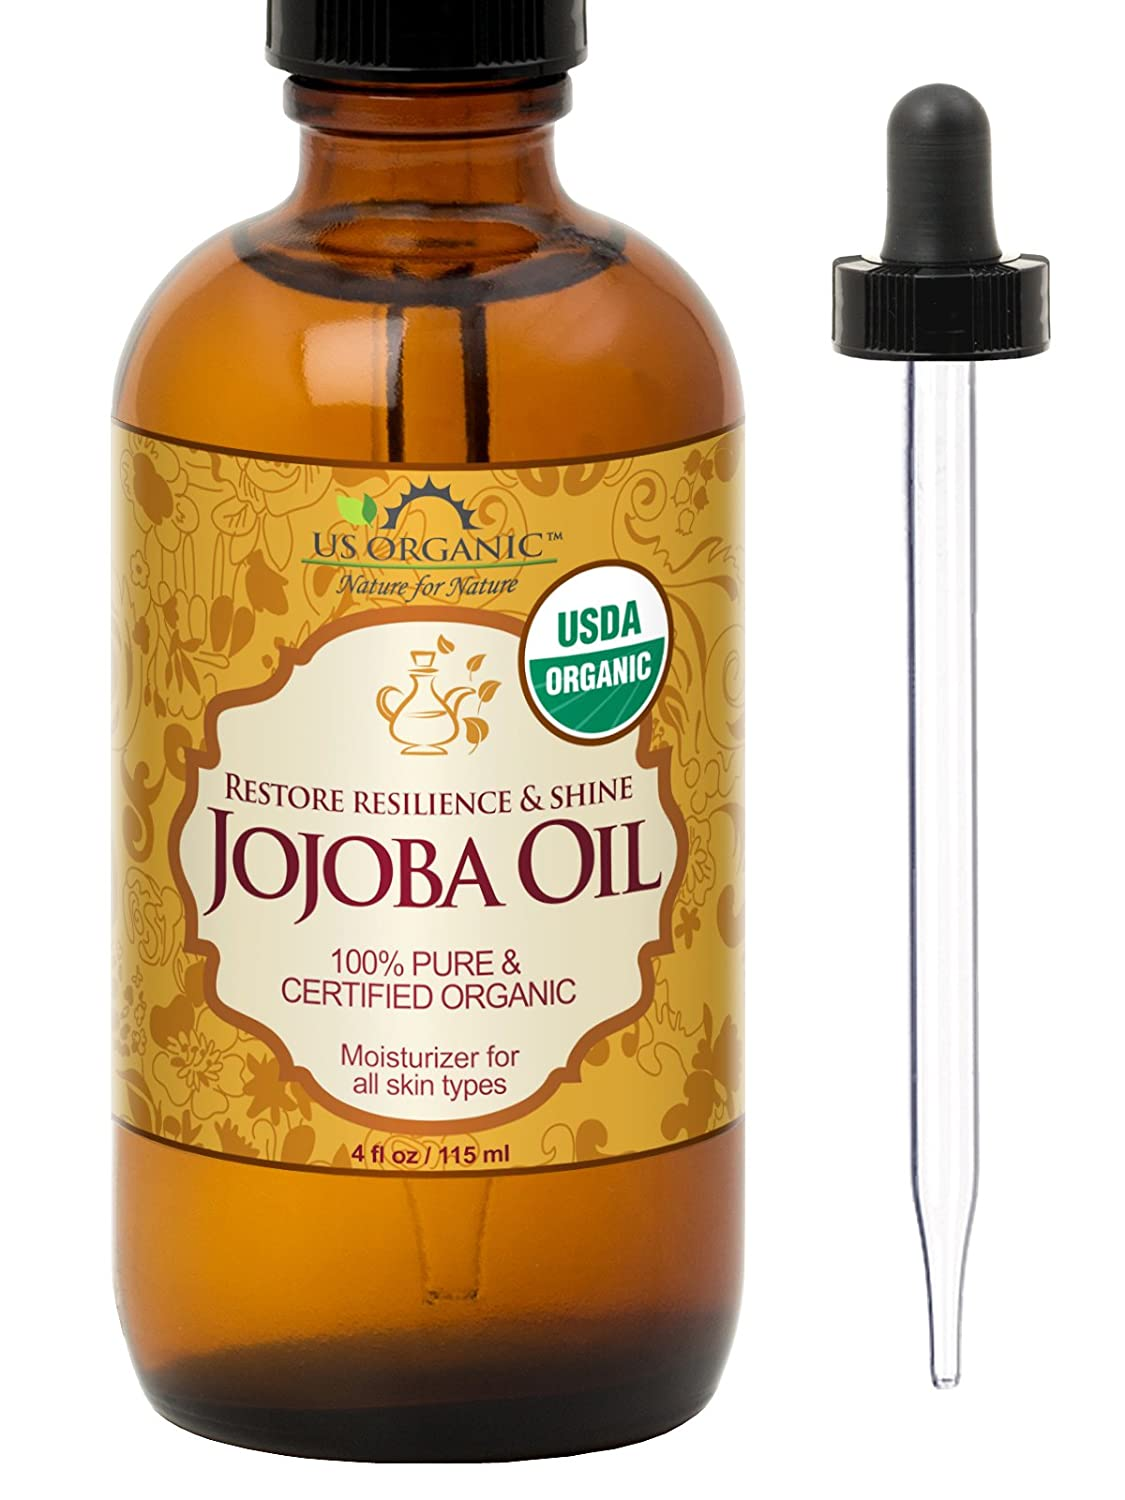 US Organic Jojoba Oil, USDA Certified Organic,100% Pure & Natural, Cold Pressed Virgin, Unrefined, Haxane Free, 4 Ounce in Amber Glass Bottle with Glass Eye Dropper for Easy Application